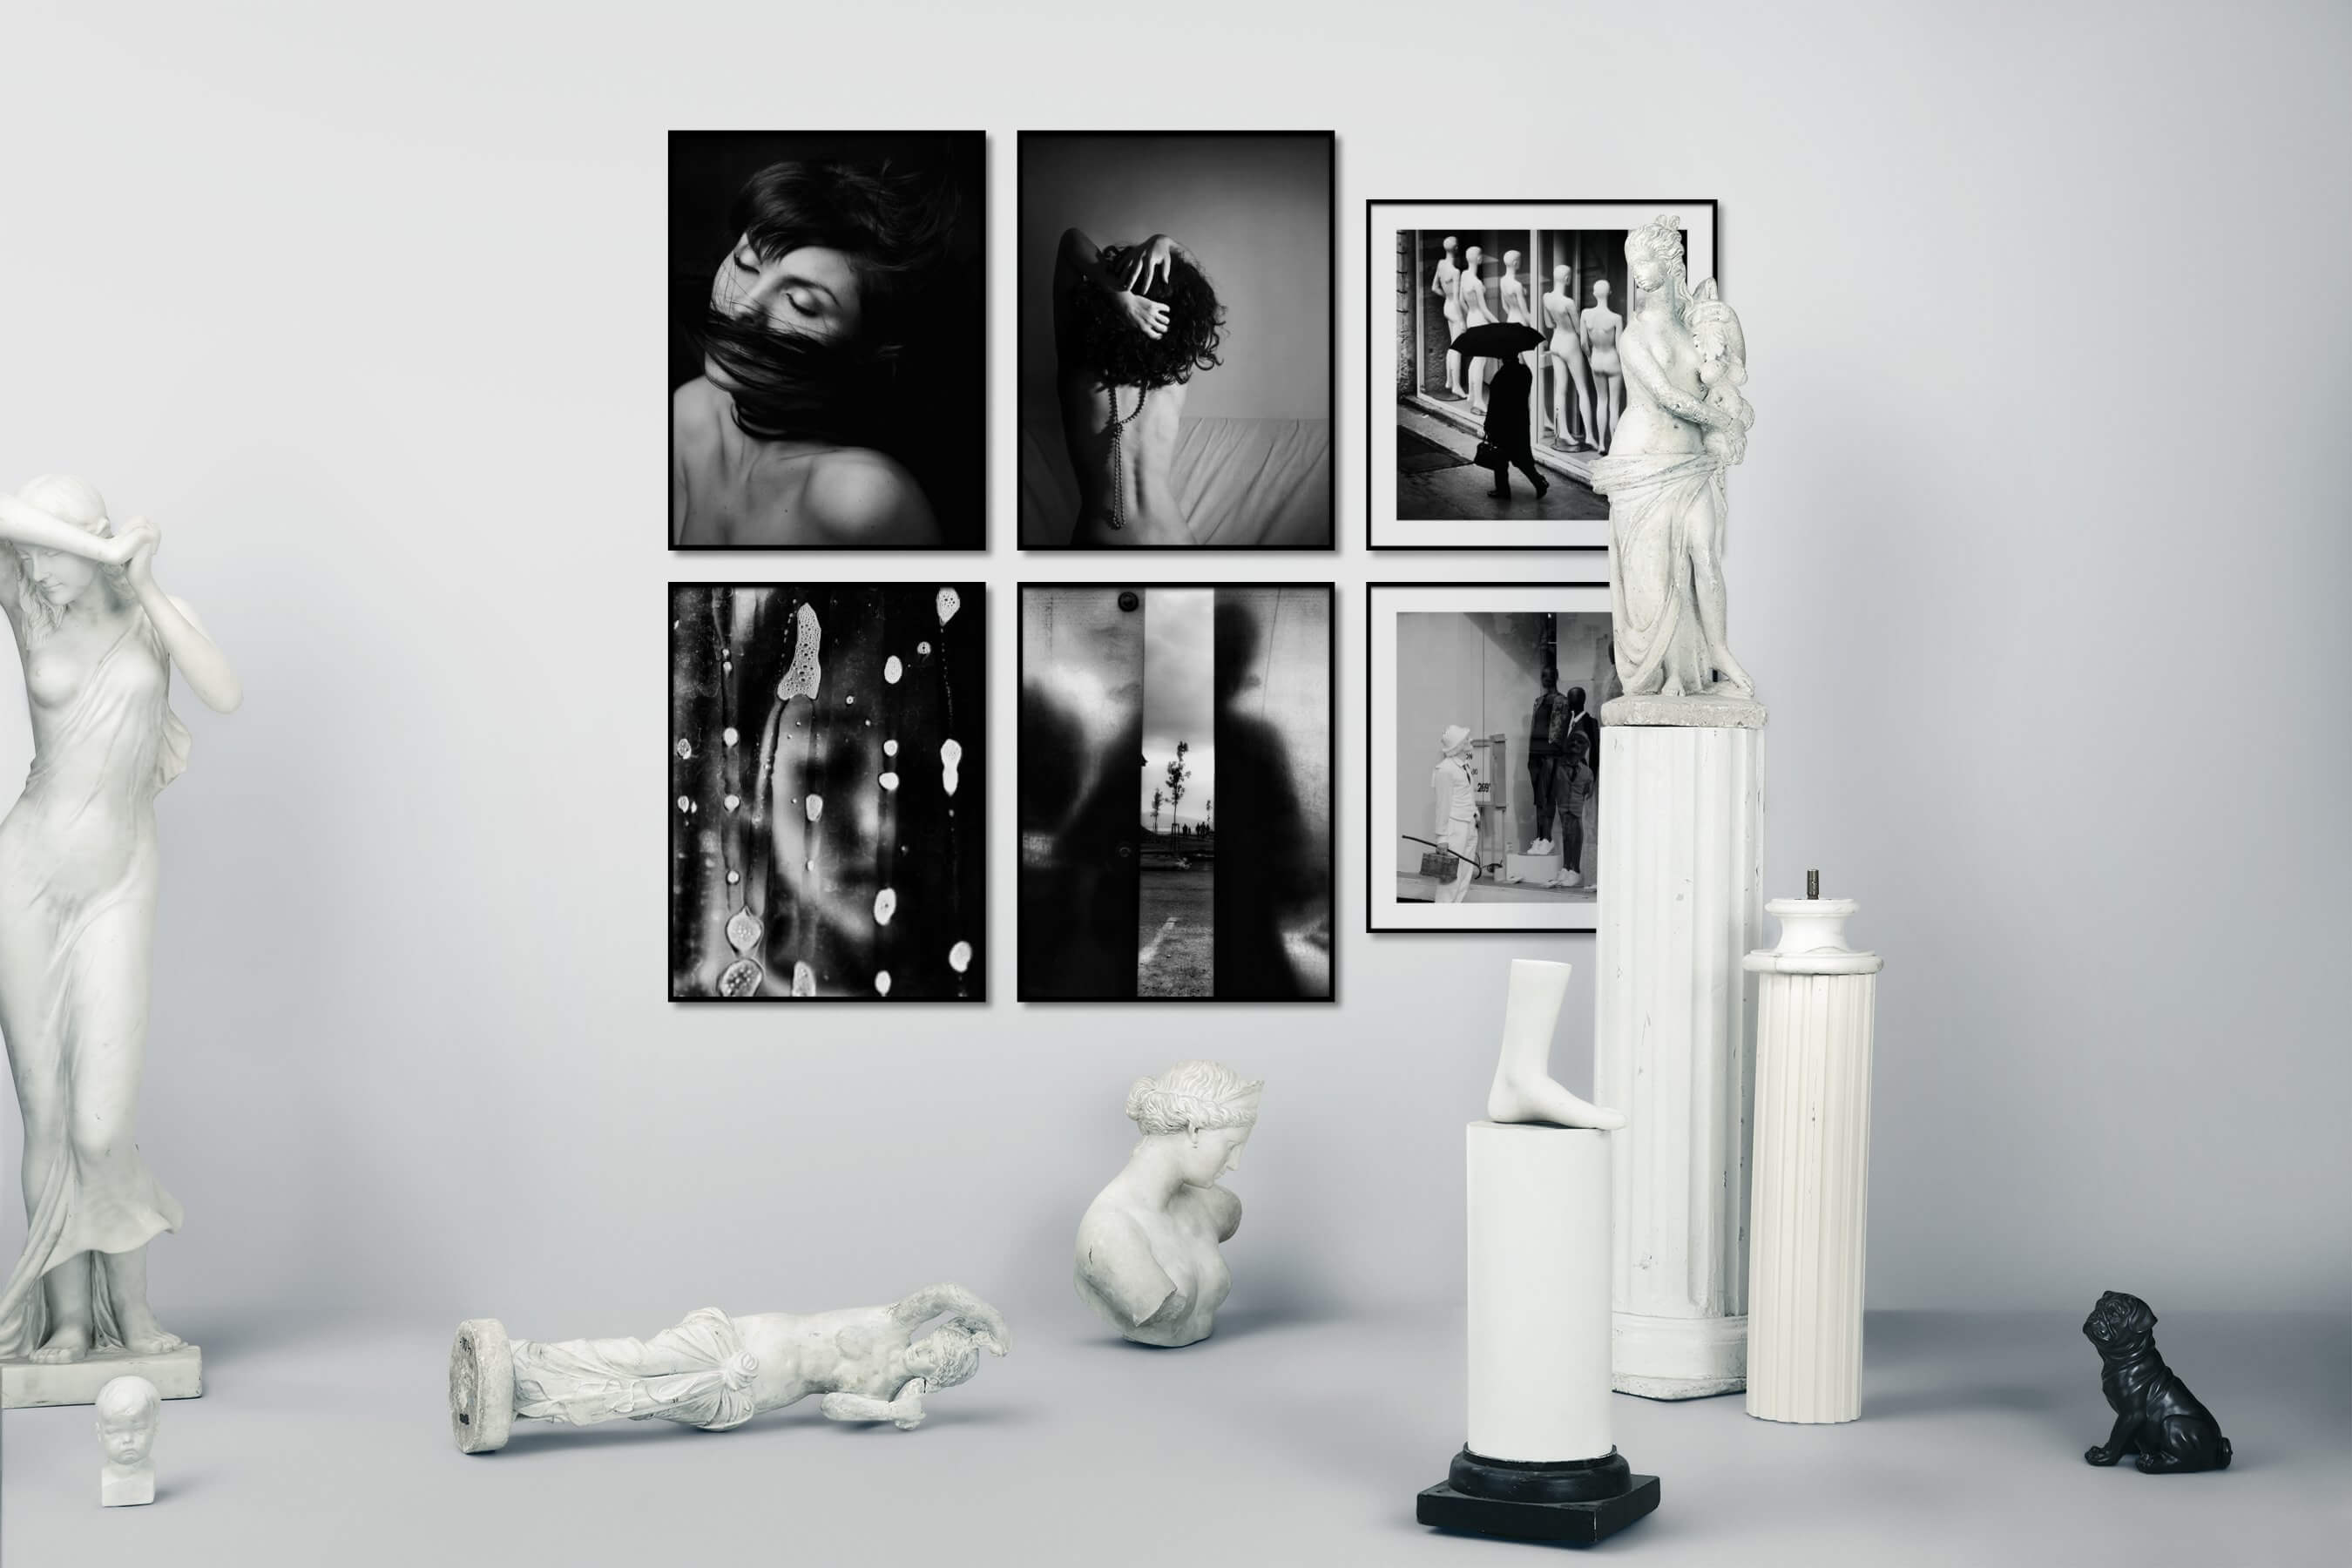 Gallery wall idea with six framed pictures arranged on a wall depicting Fashion & Beauty, Black & White, For the Moderate, Artsy, and City Life